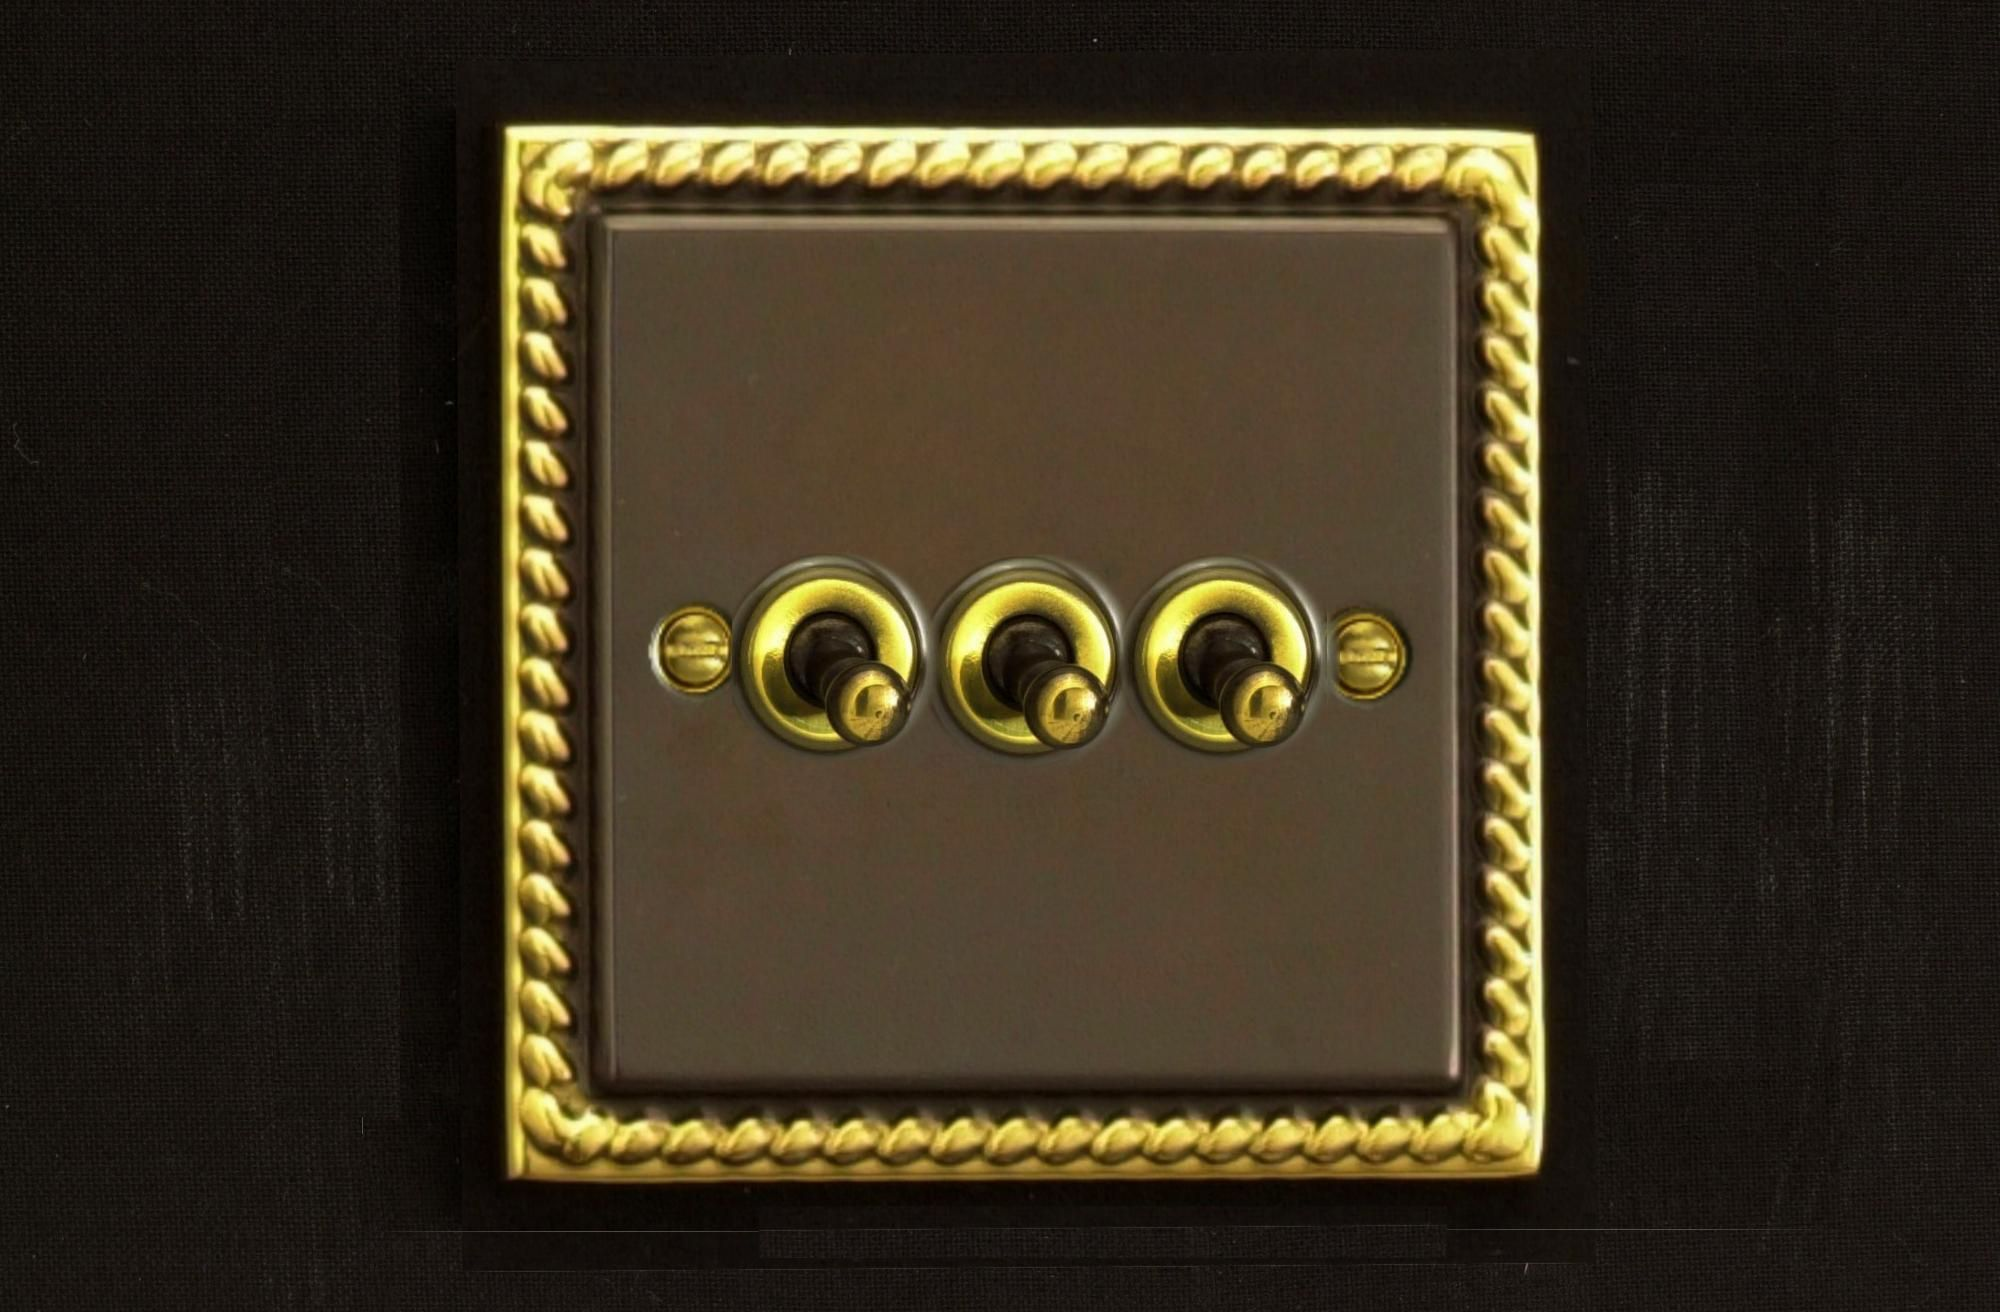 Varilight 3 Gang 10a 1 Or 2 Way Dolly Toggle Light Switch Antique Brass Georgian Finish Xat3